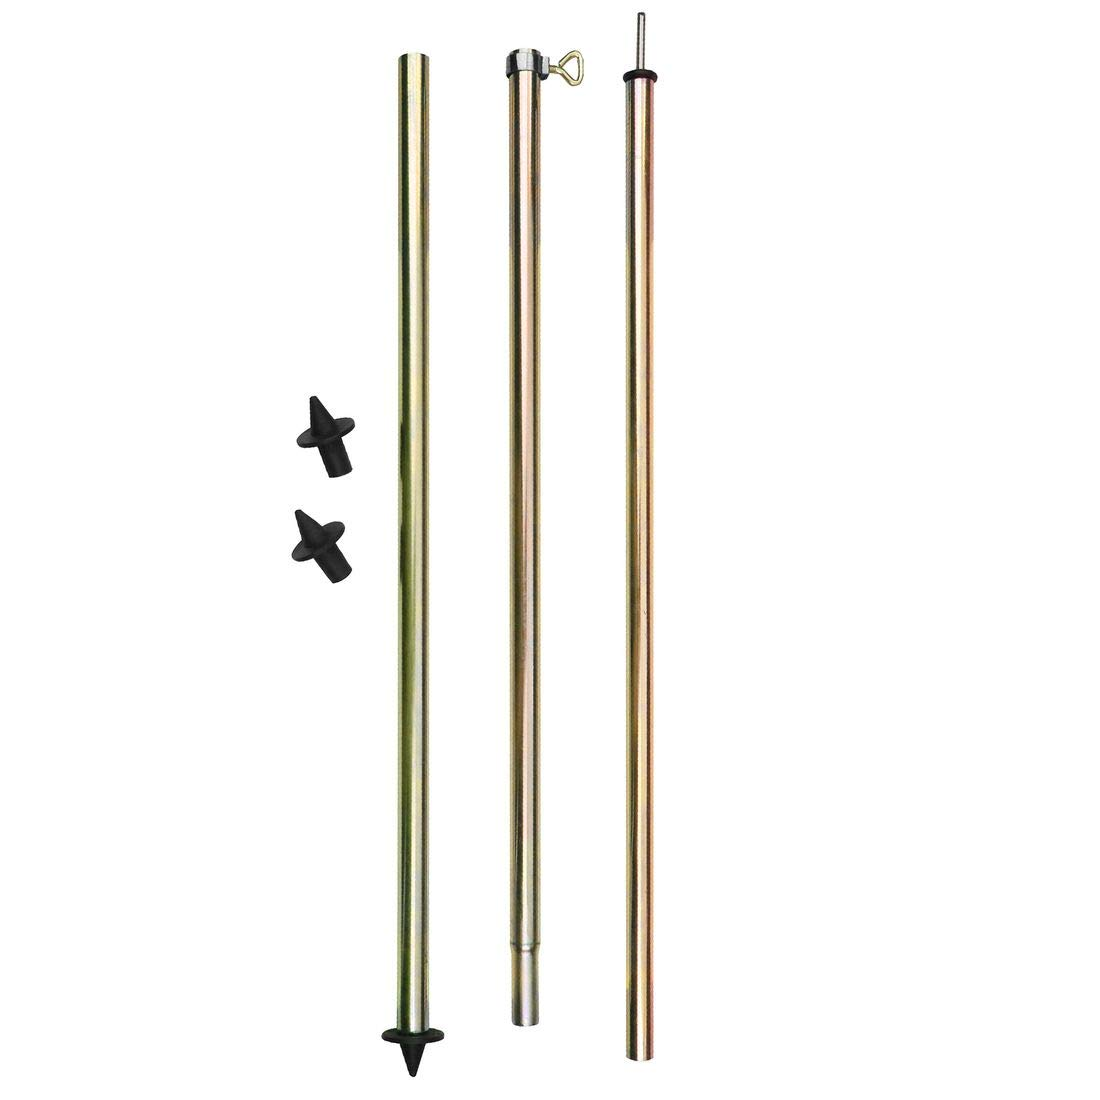 10T Outdoor Equipment TA Pole 260 Tienda Barra, Oro, 170 – 260 cm 170 - 260 cm 10TA5|#10T Outdoor Equipment 4260181763538